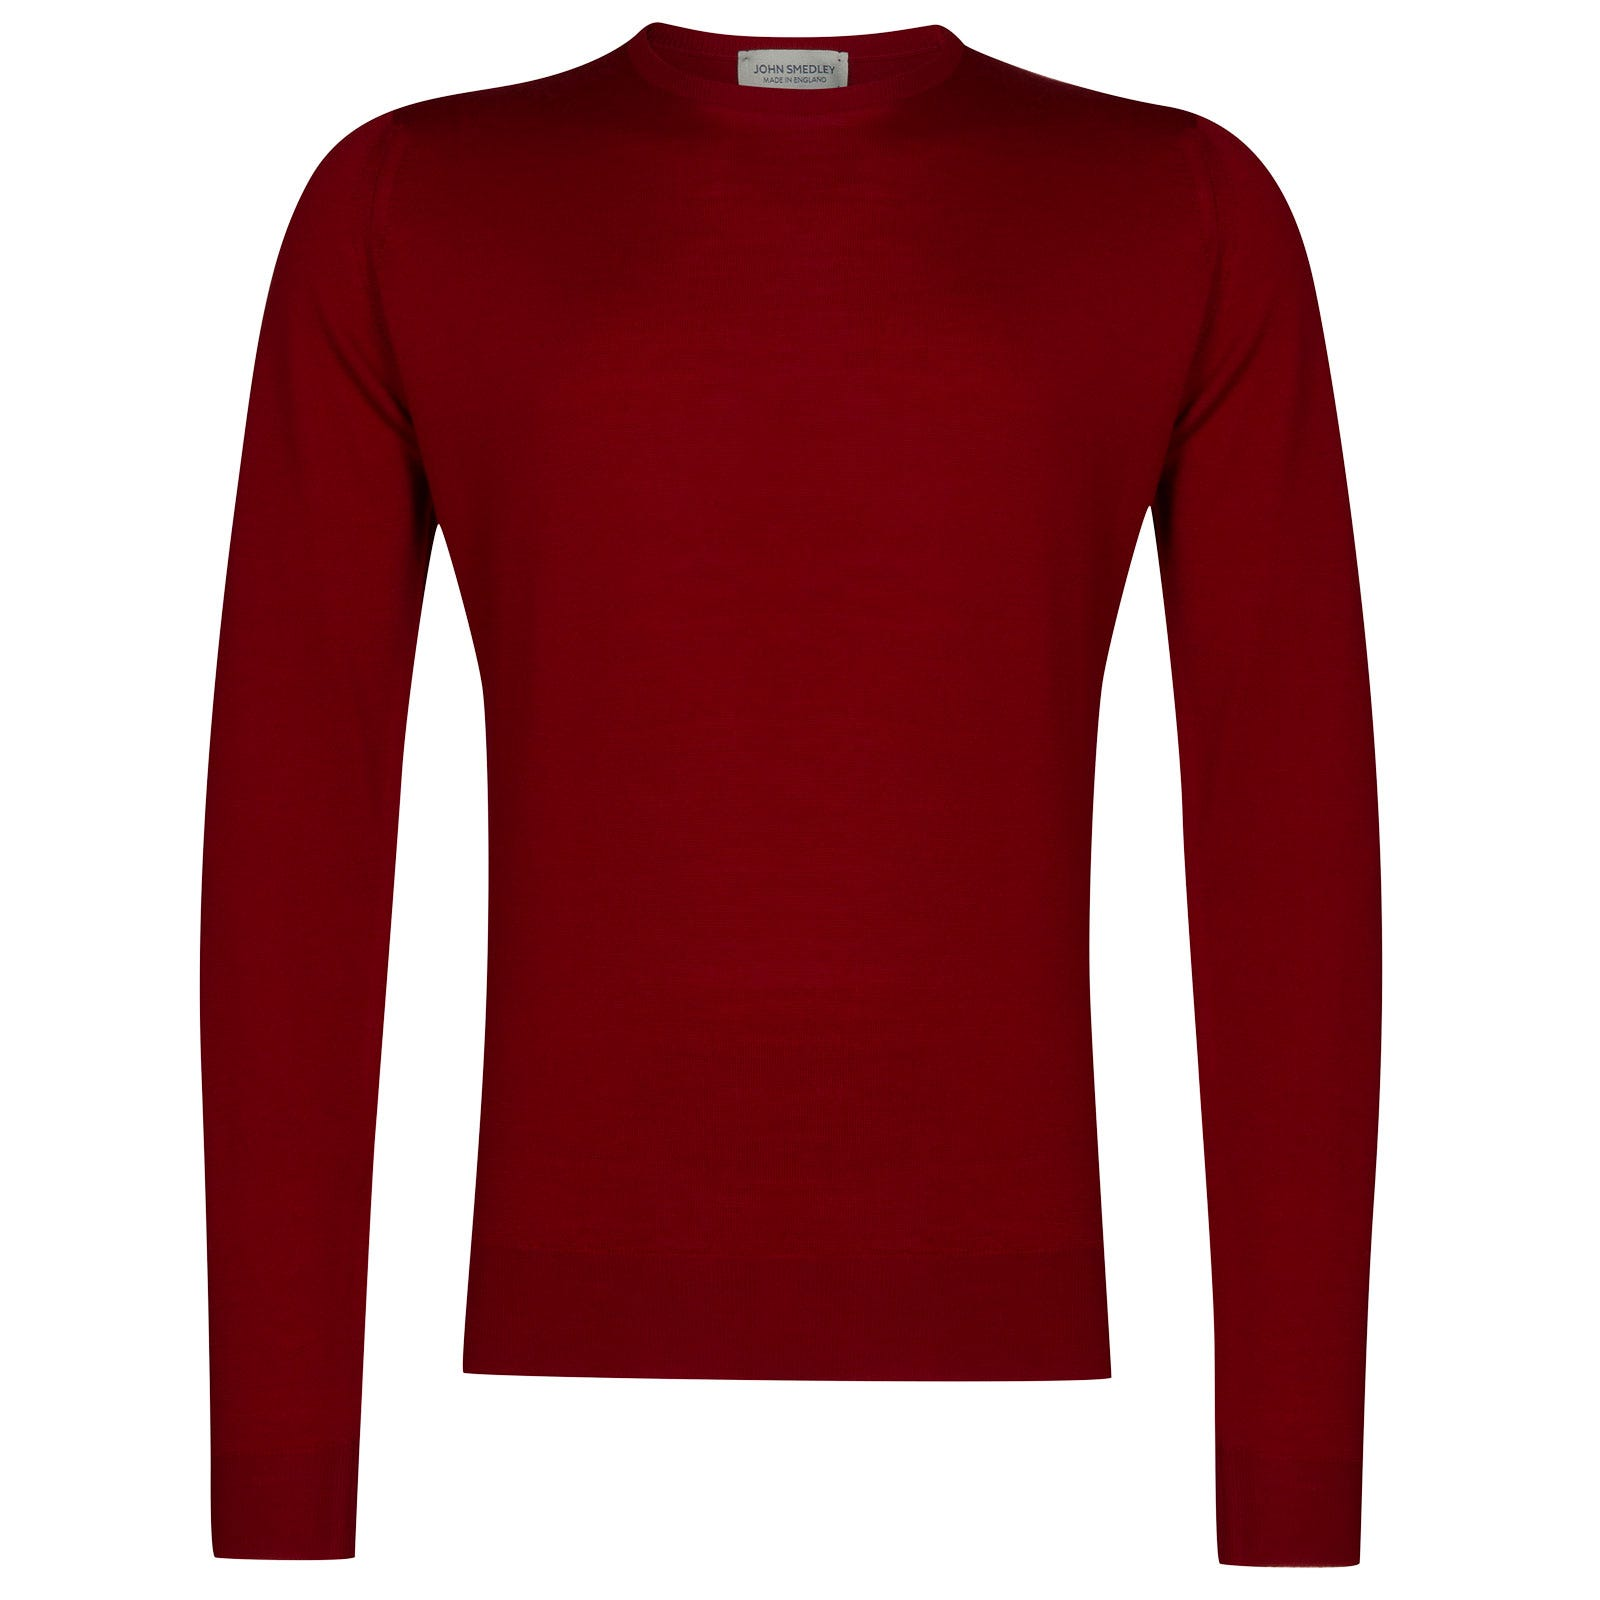 John Smedley lundy Merino Wool Pullover in Crimson Forest-M